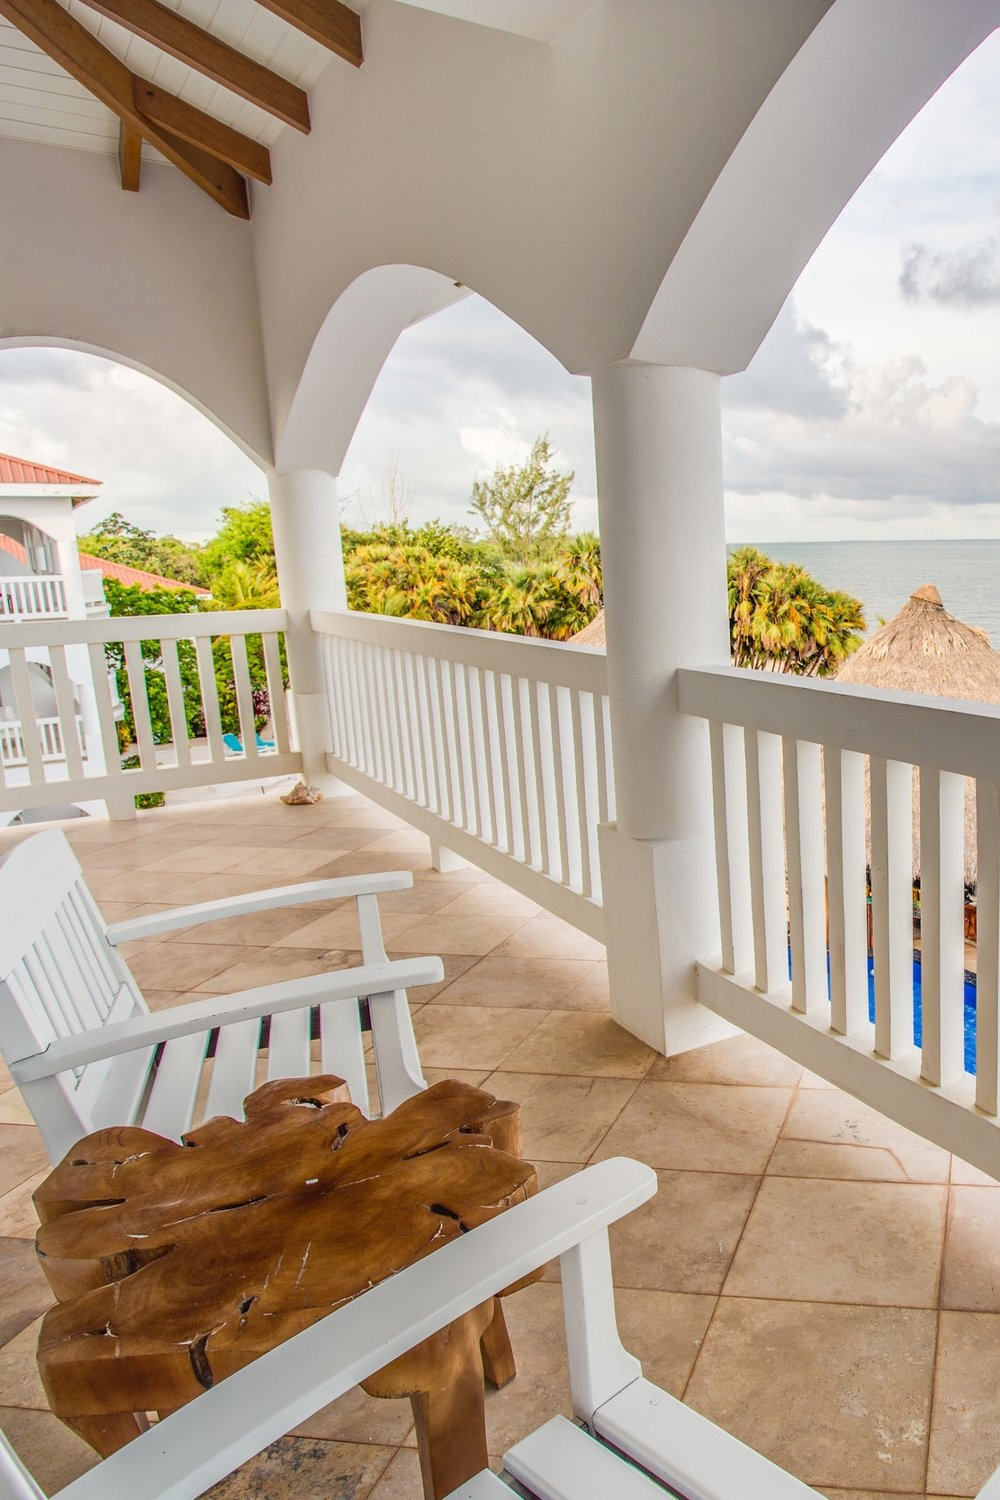 Luxury suites - Indulge with luxury accommodations. Ever room is a suite at Belize Ocean Club.